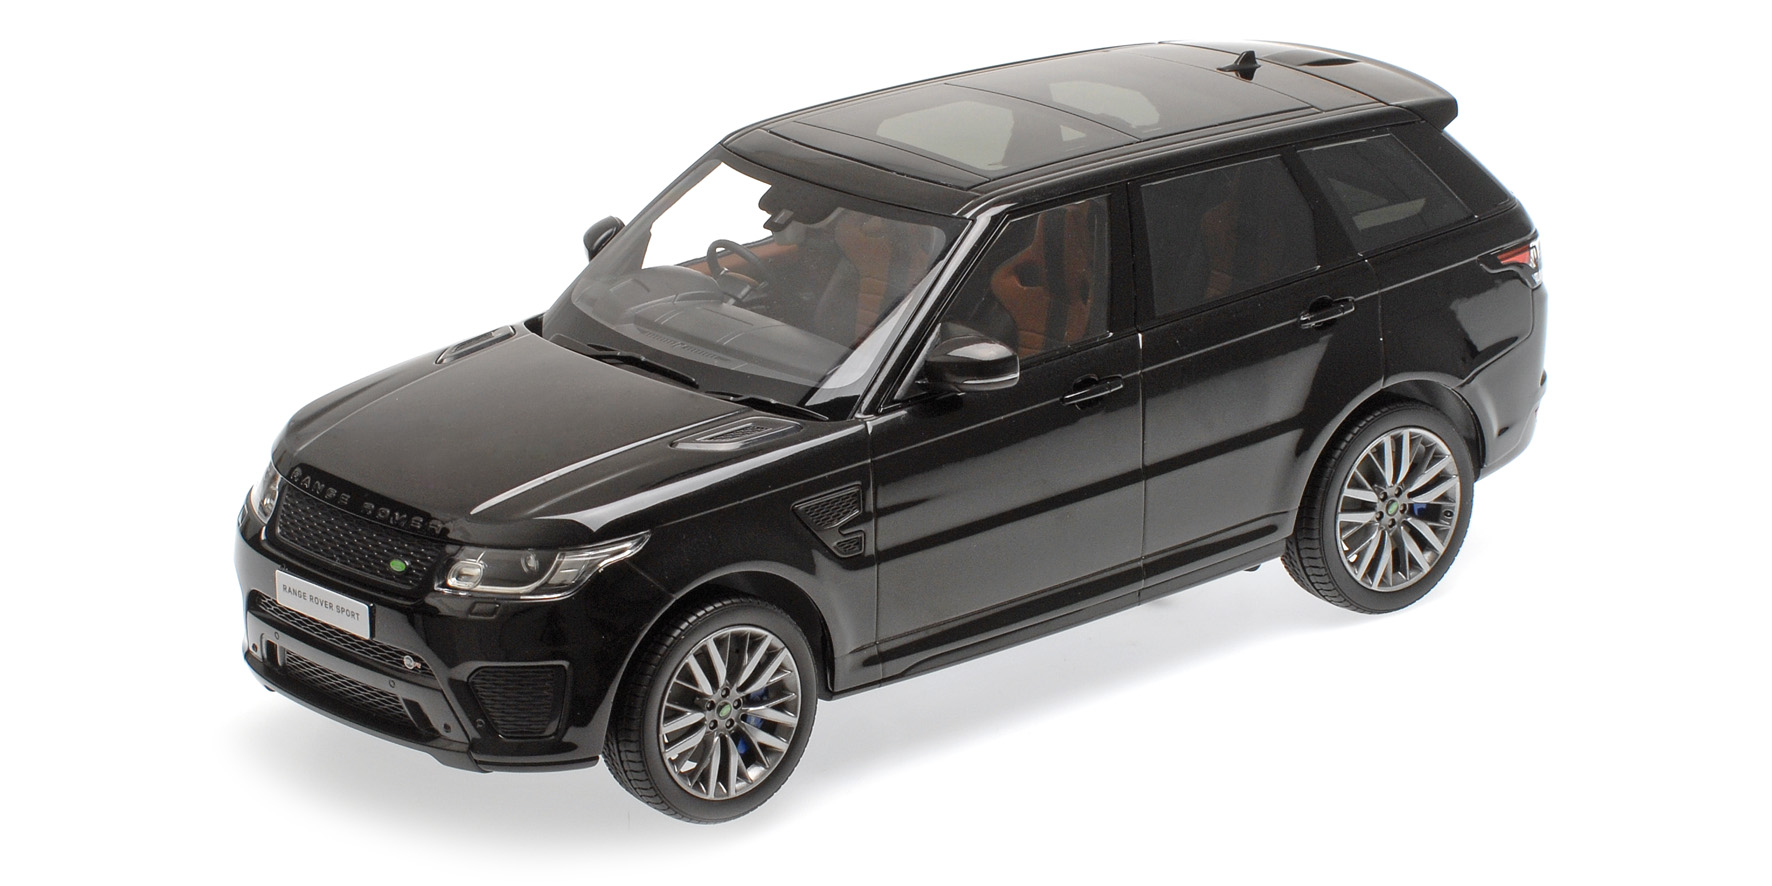 Black Land Rover Range Rover Sport Svr By Minichamps 1 18 Scale Choice Gear